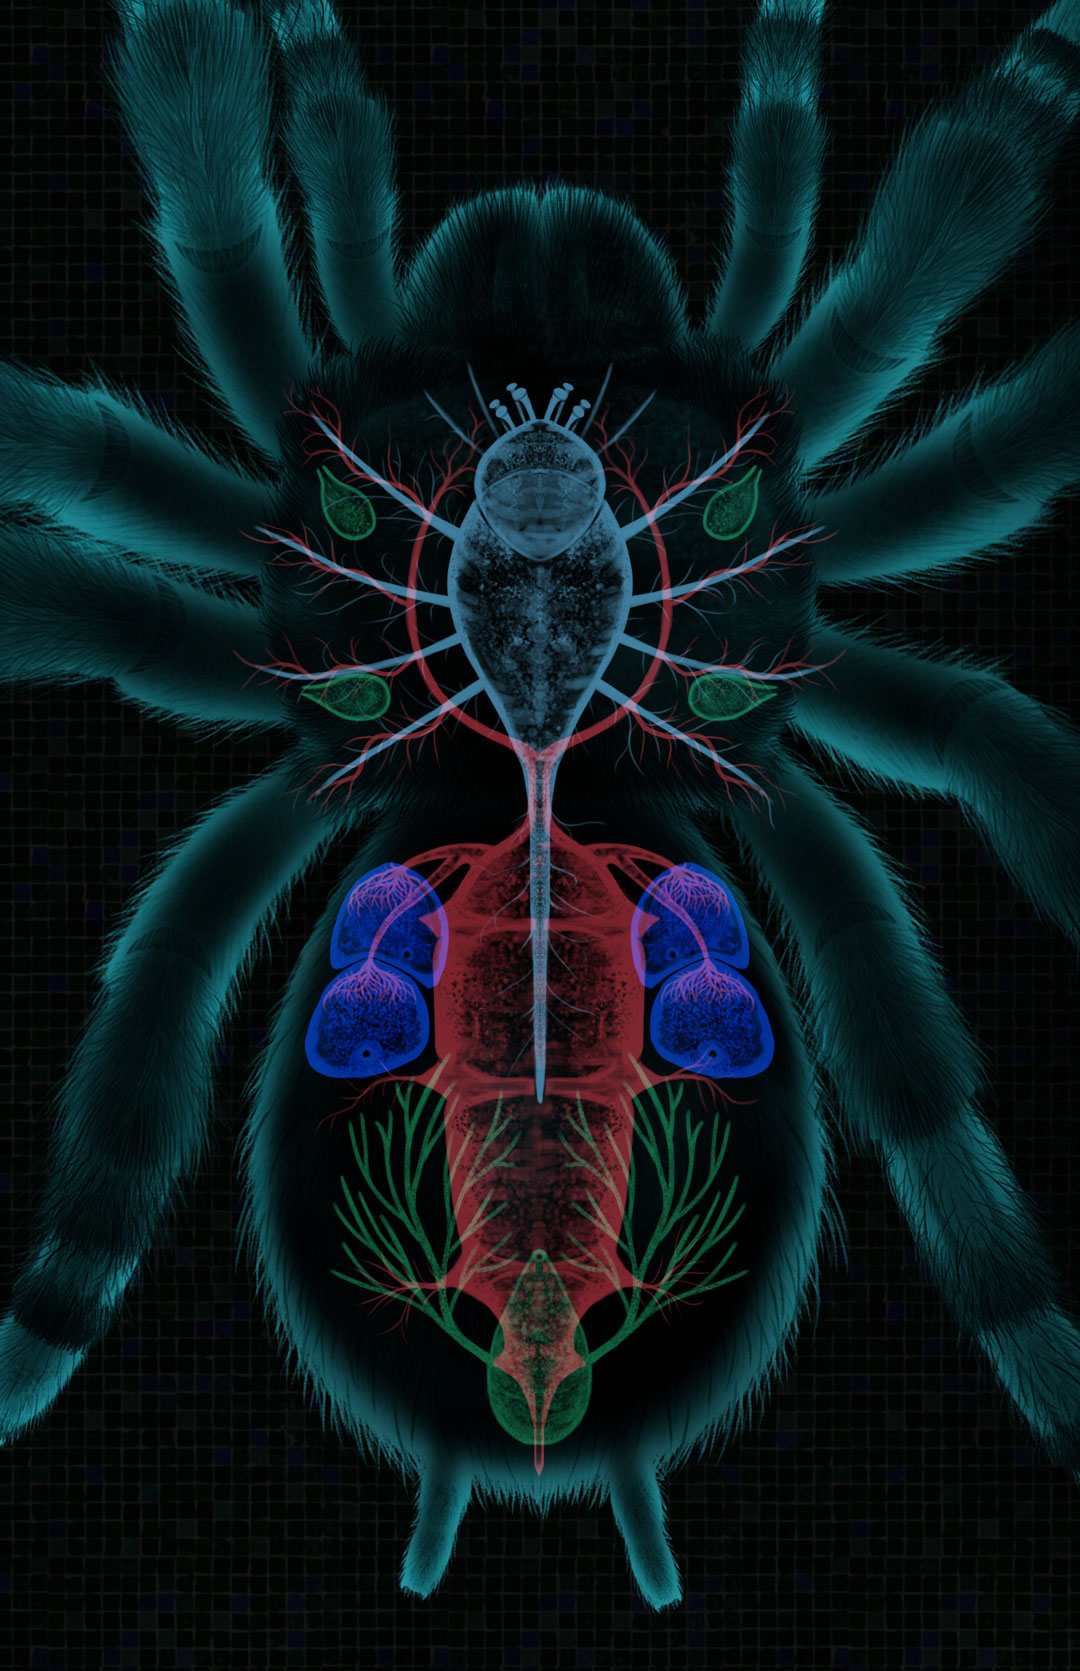 Brachypelma smithi. Brachypelma smithi, internal anatomy with some  organs isolated. Green: Excretory System; Pale Blue: Nervous System; Dark Blue: Respiratory System; Red: Circulatory Sustem. Art by Román García Mora.